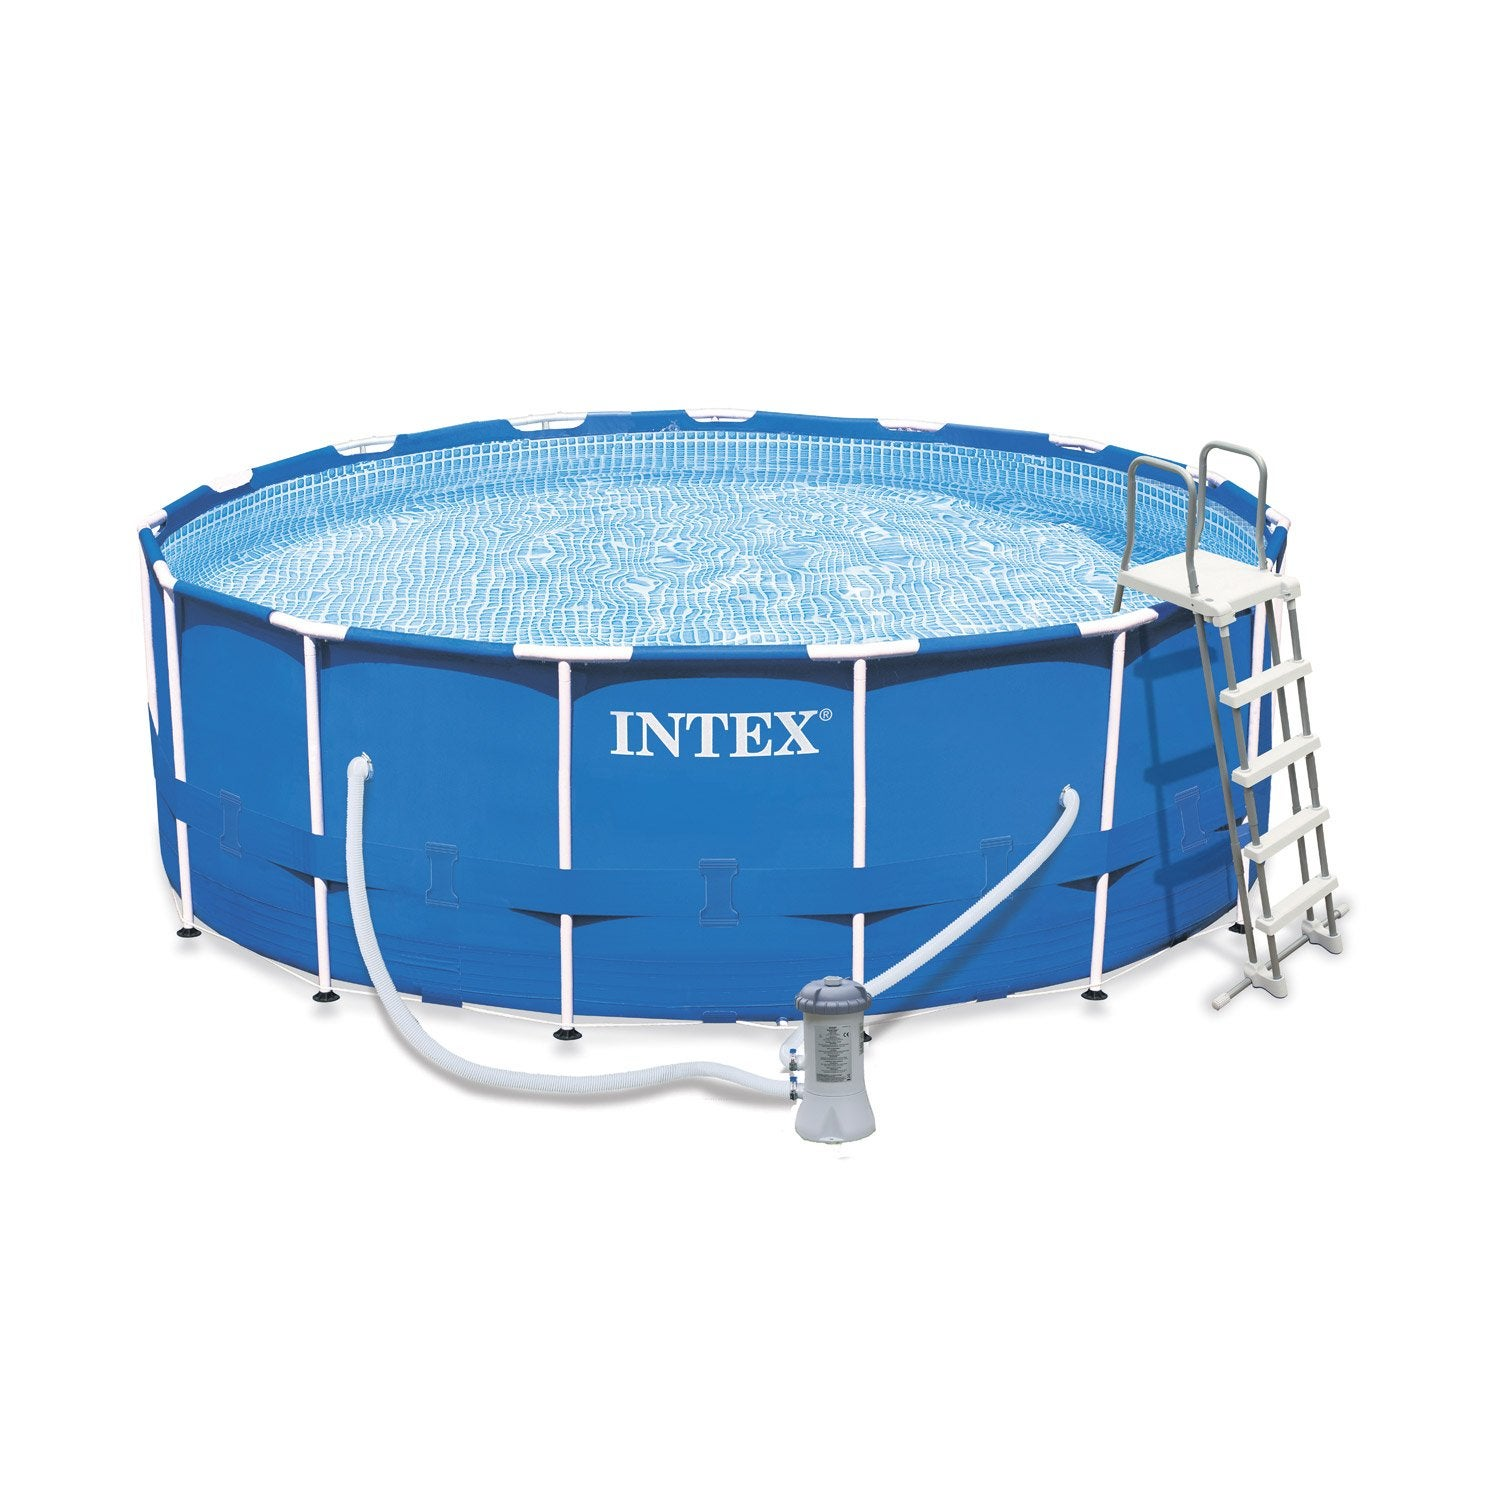 Piscine hors sol autoportante tubulaire metal frame intex for Piscine intex tubulaire